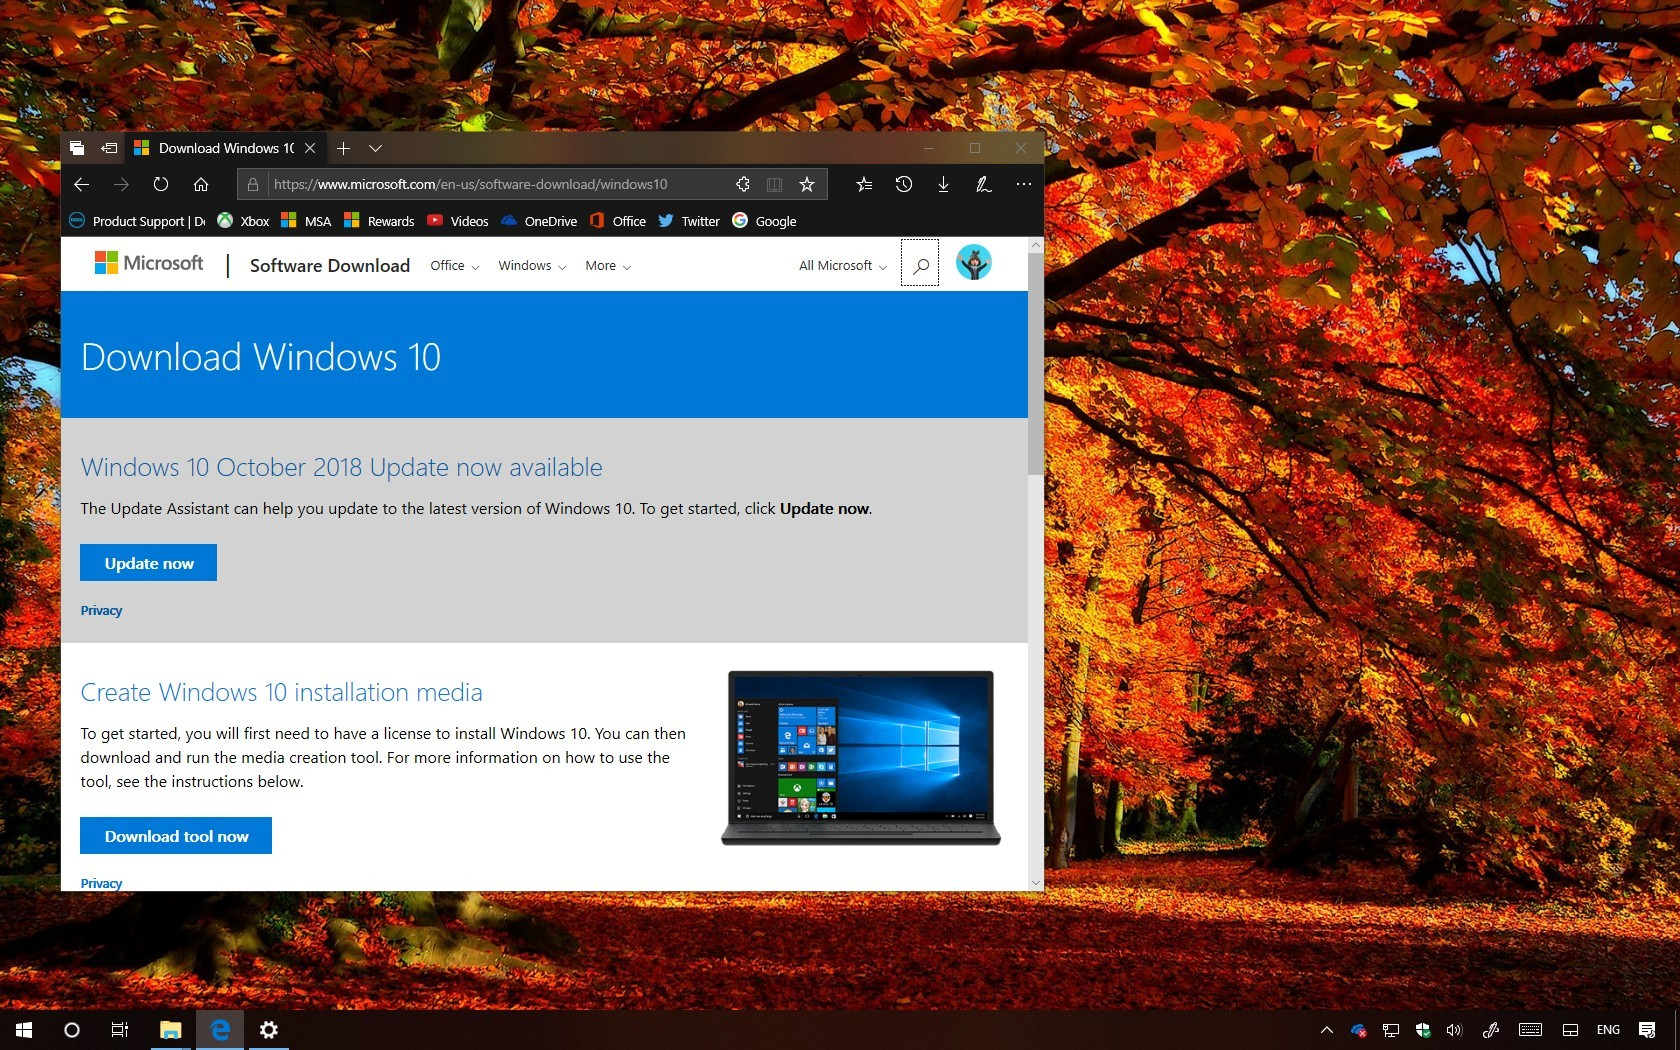 Windows 10 version 1809 release again on November 13